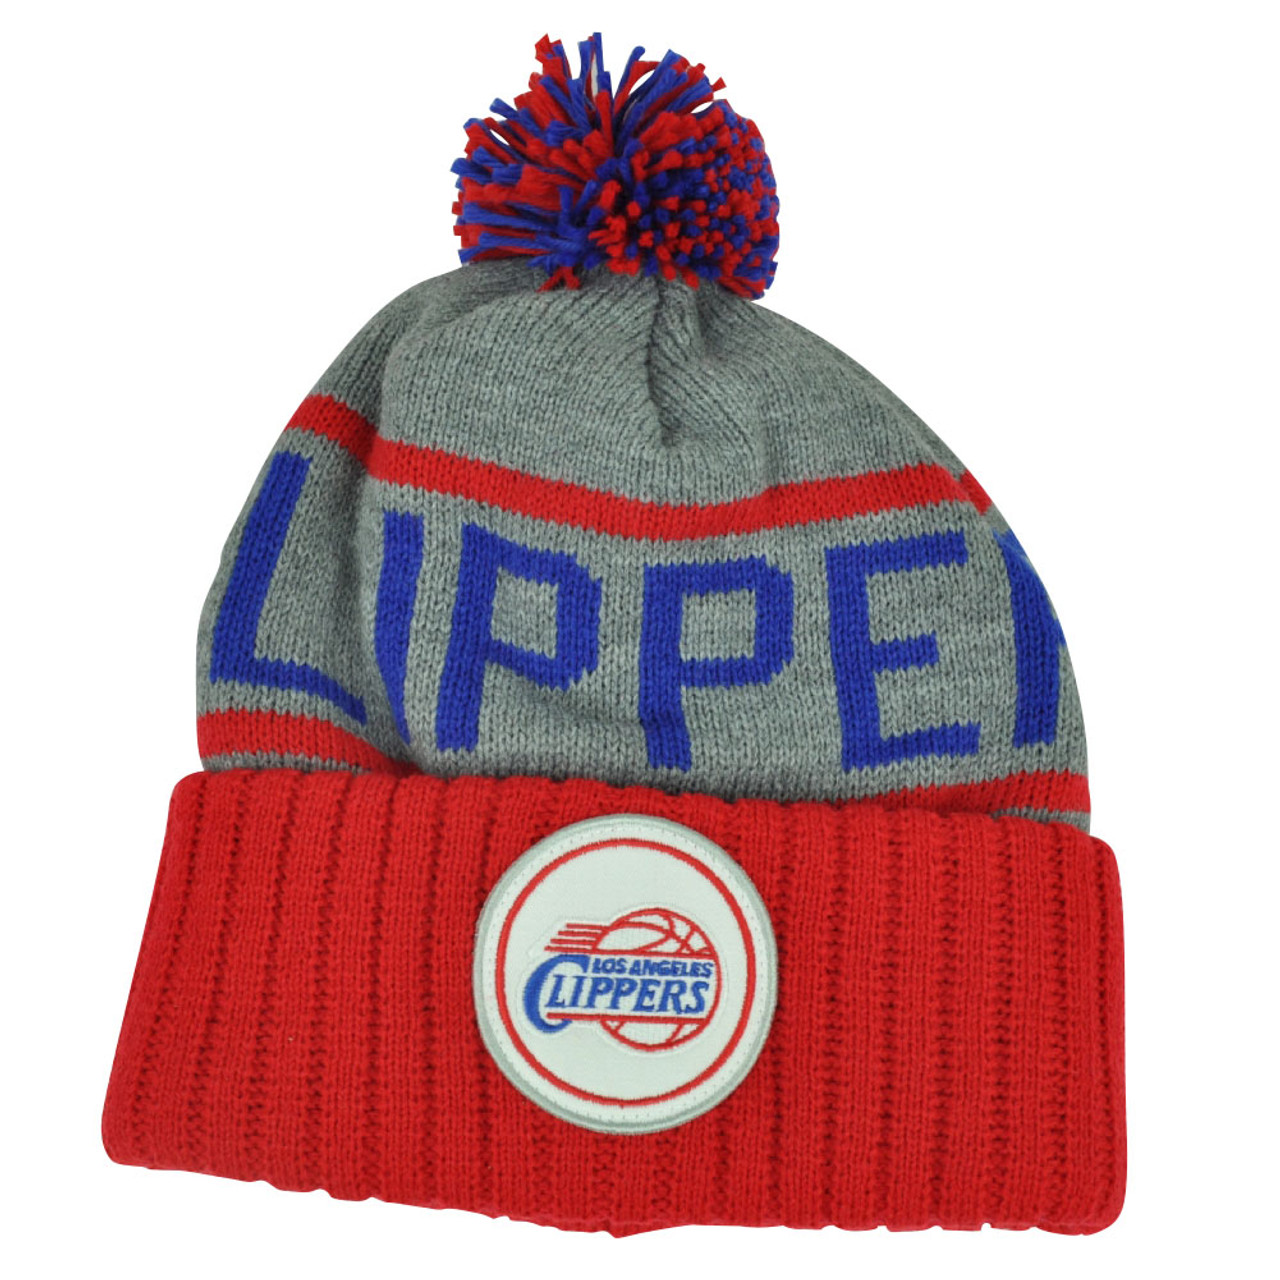 Los Angeles Clippers Cuffed Pom Knit Cap Beanie